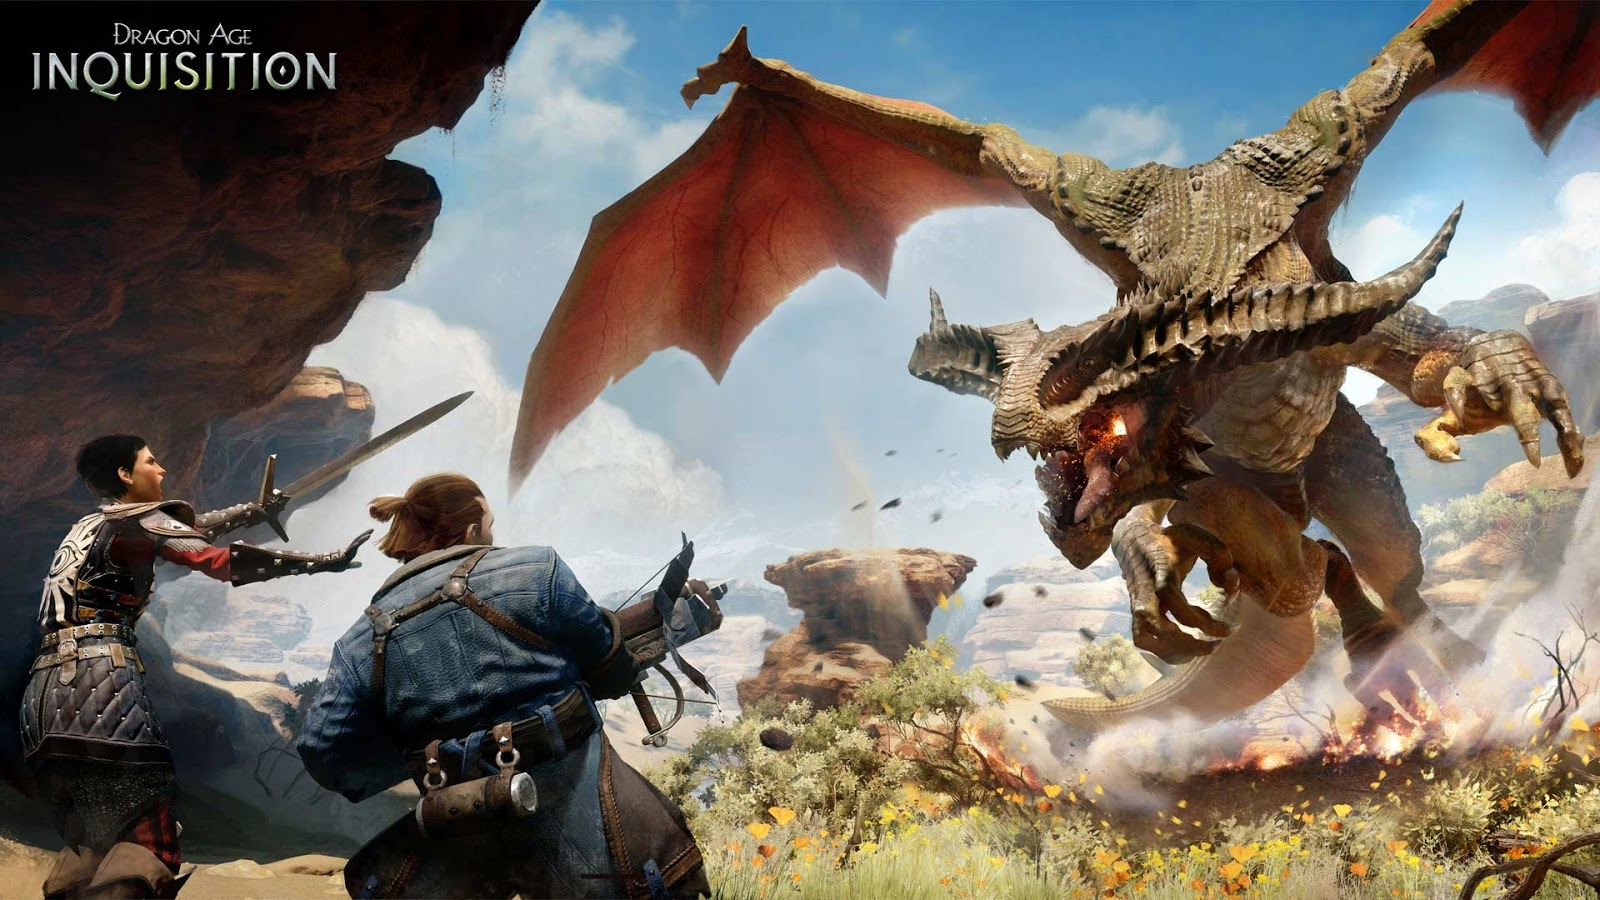 Dragon Age: Inquisition Is The Best Game Of The Year 2014 Amazon Version